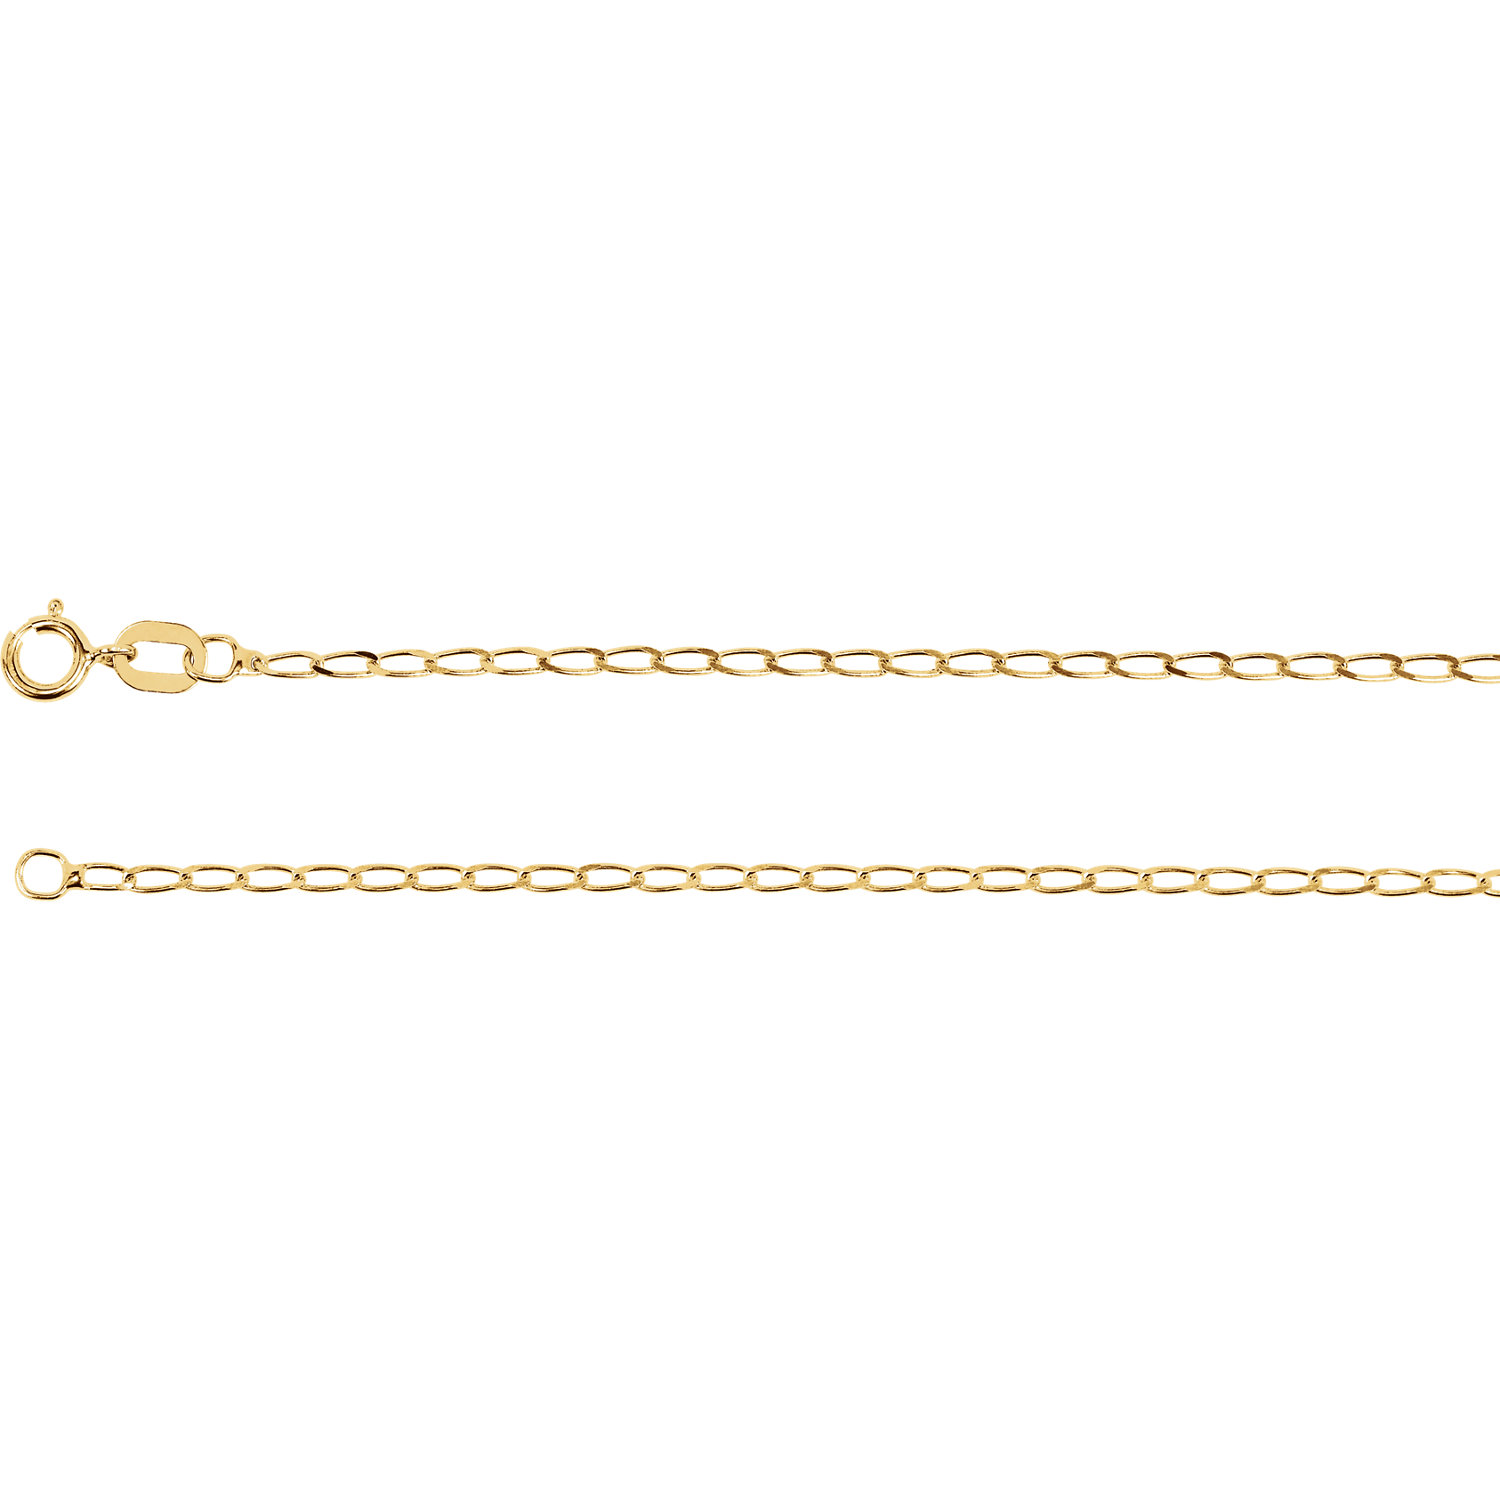 14K Yellow Solid Curb Chain, 0.5 mm, with Spring Ring Clasp, 18 Inches